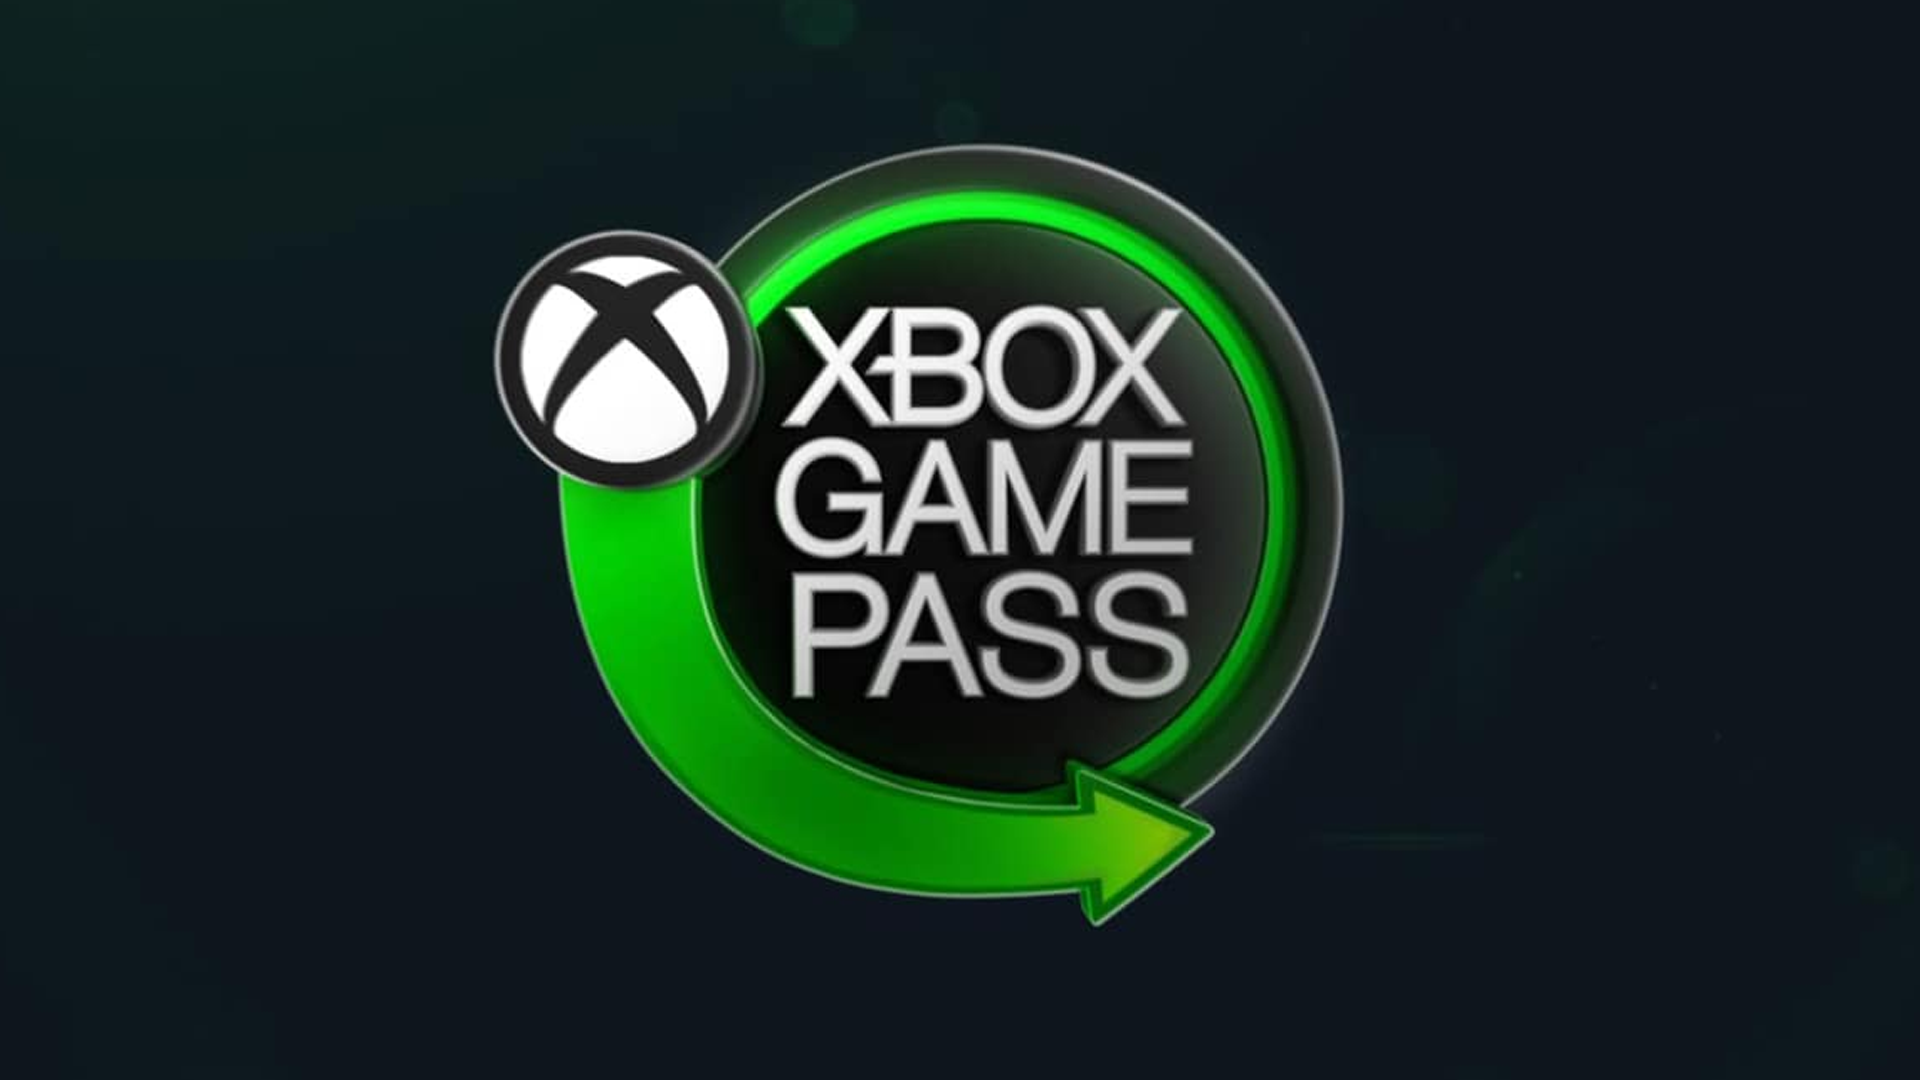 A Sony game available in Xbox Game Pass as soon as it is released